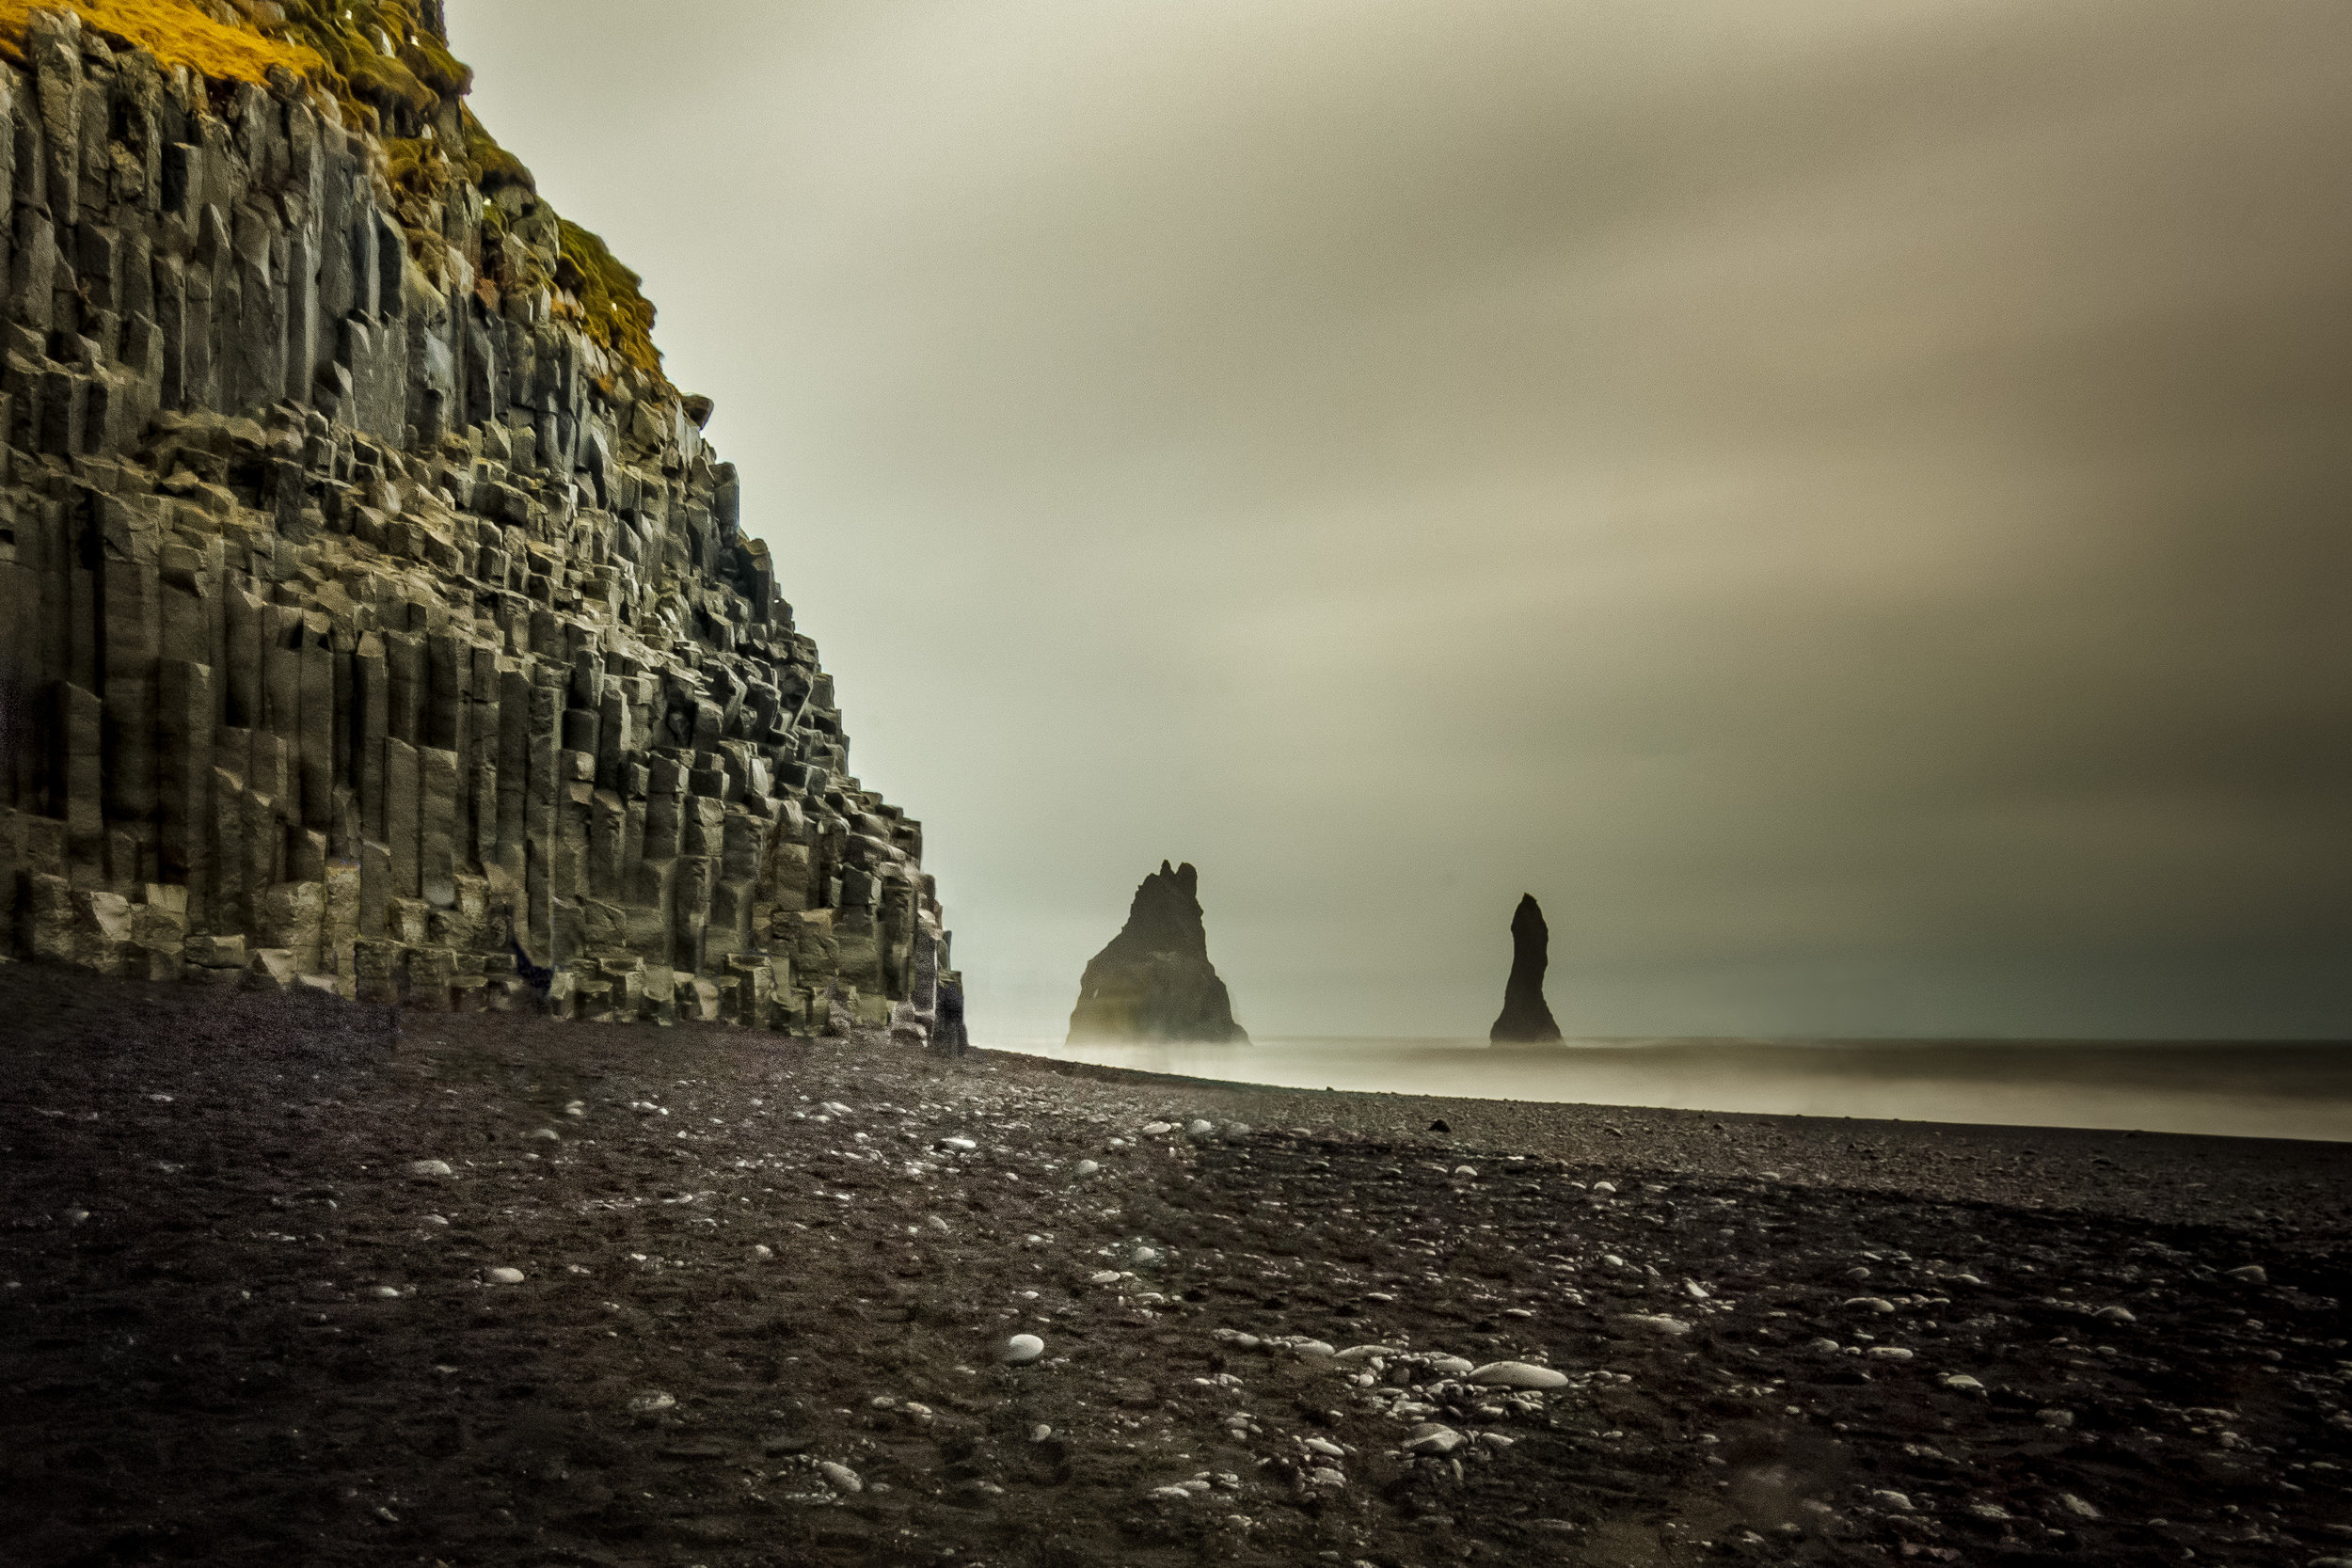 Here is the famous Black Sand Beach in Iceland. It was a gorgeous setting but it was raining and I was being rushed by my tour group. Consequently, the image isn't as sharp, there's no interesting foreground, and you don't get a sense of how grand those basalt columns are. I didn't do this location justice.